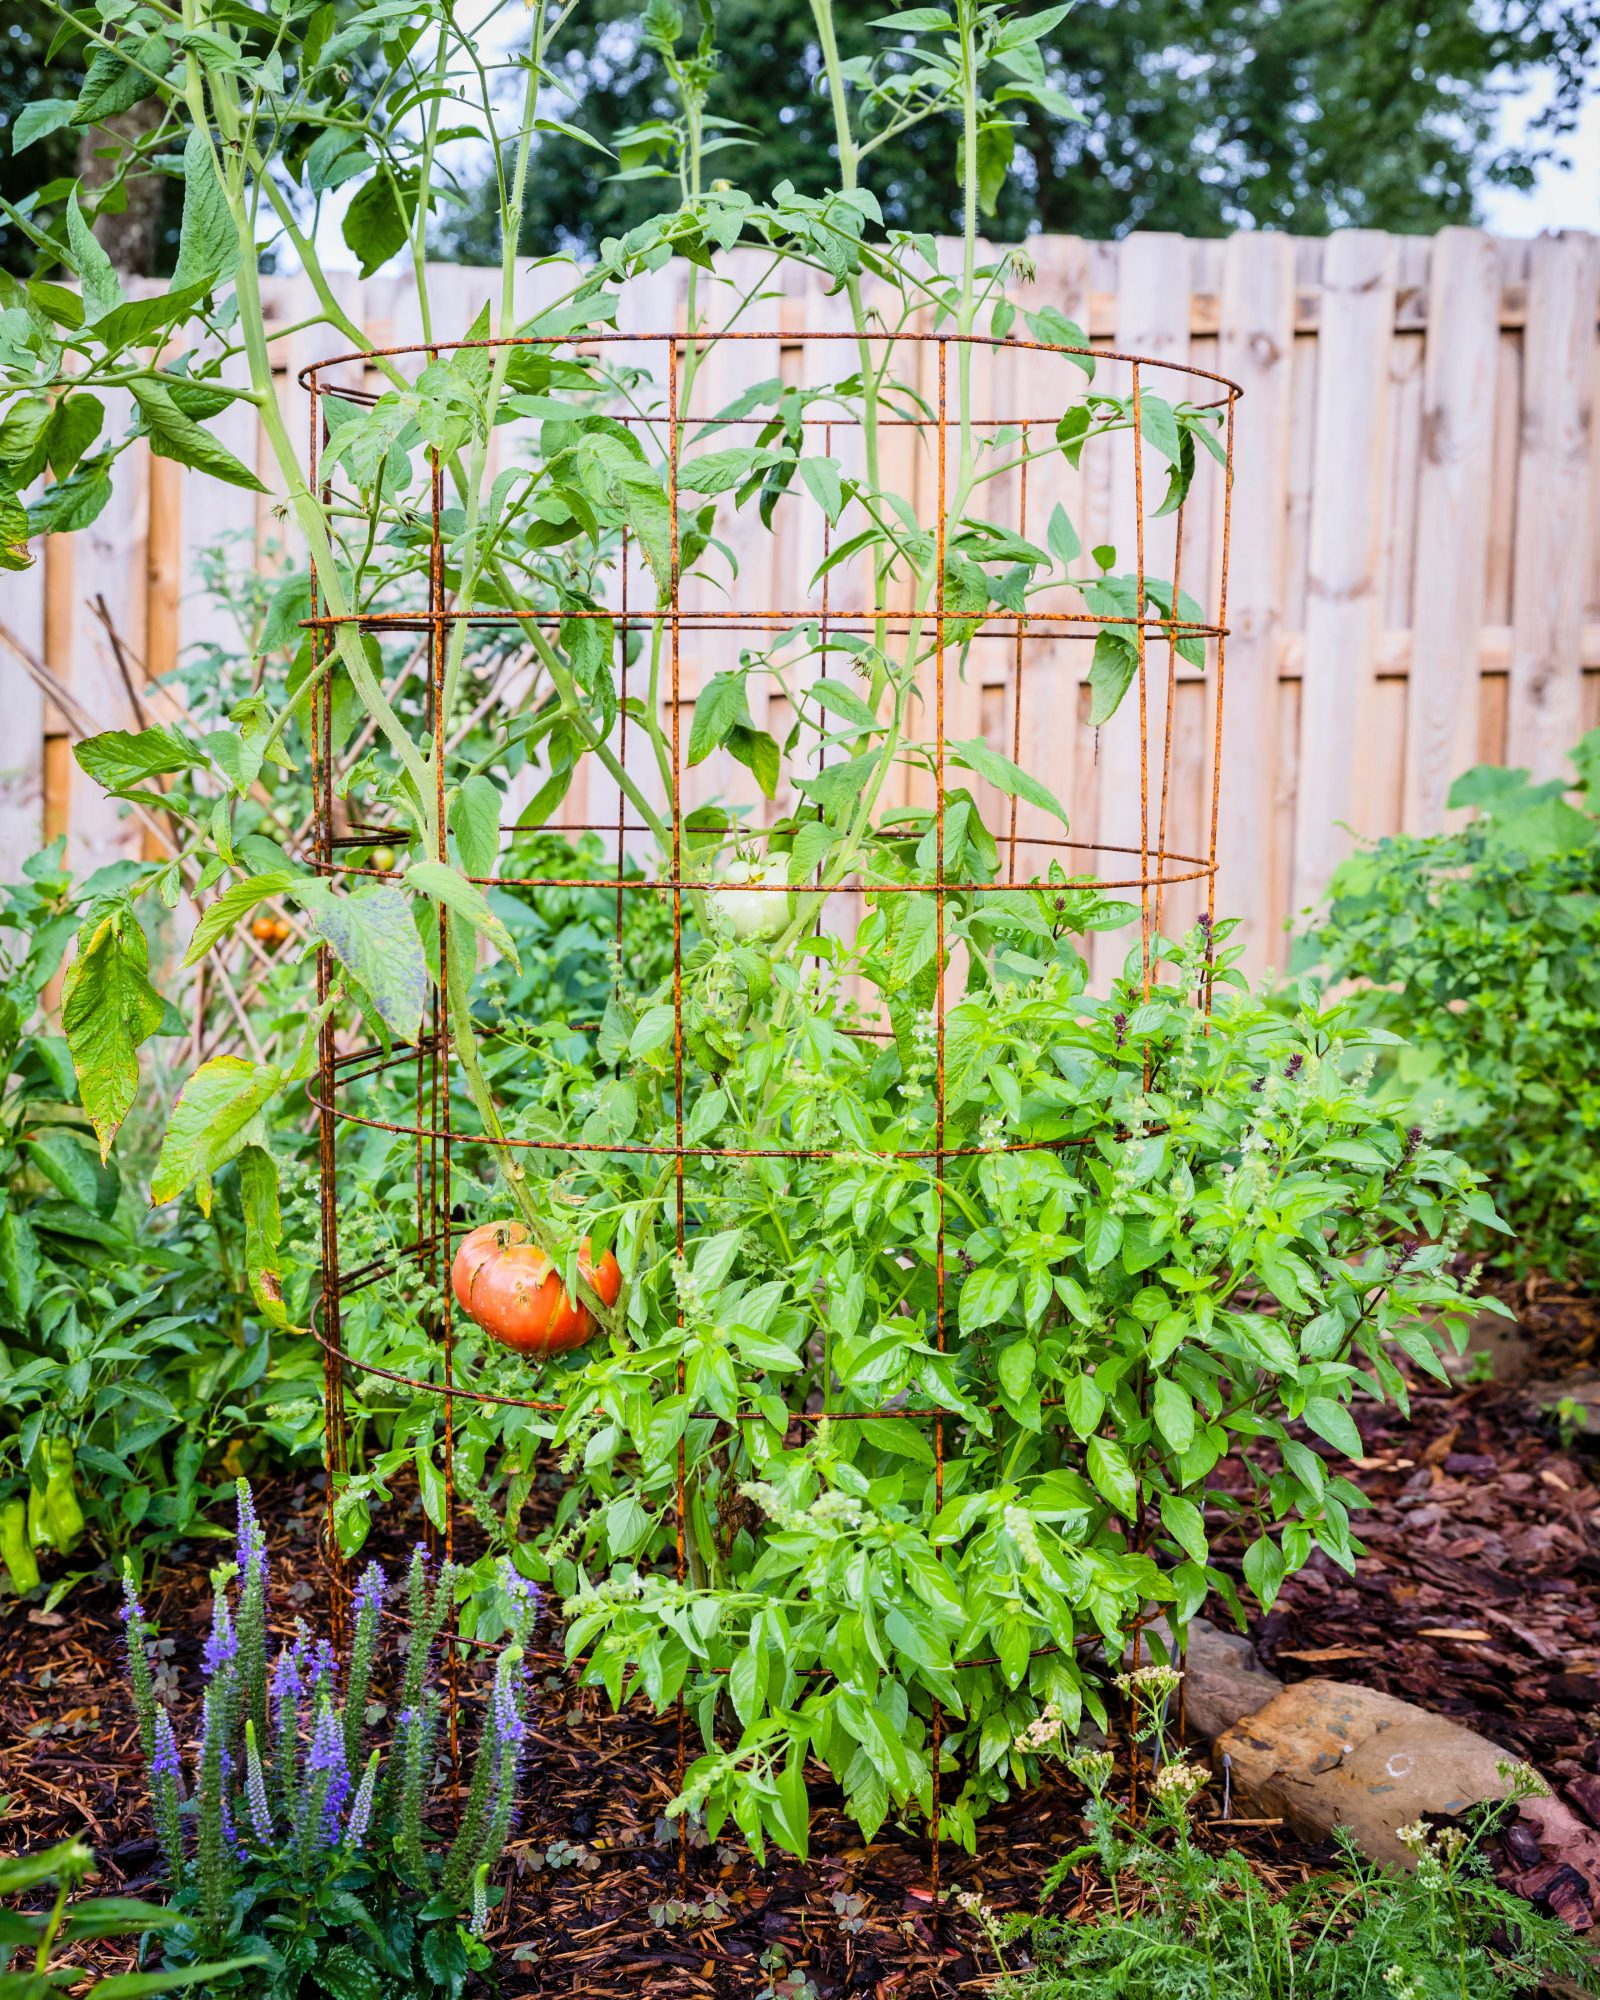 Tomato Trellises in Vegetable Garden